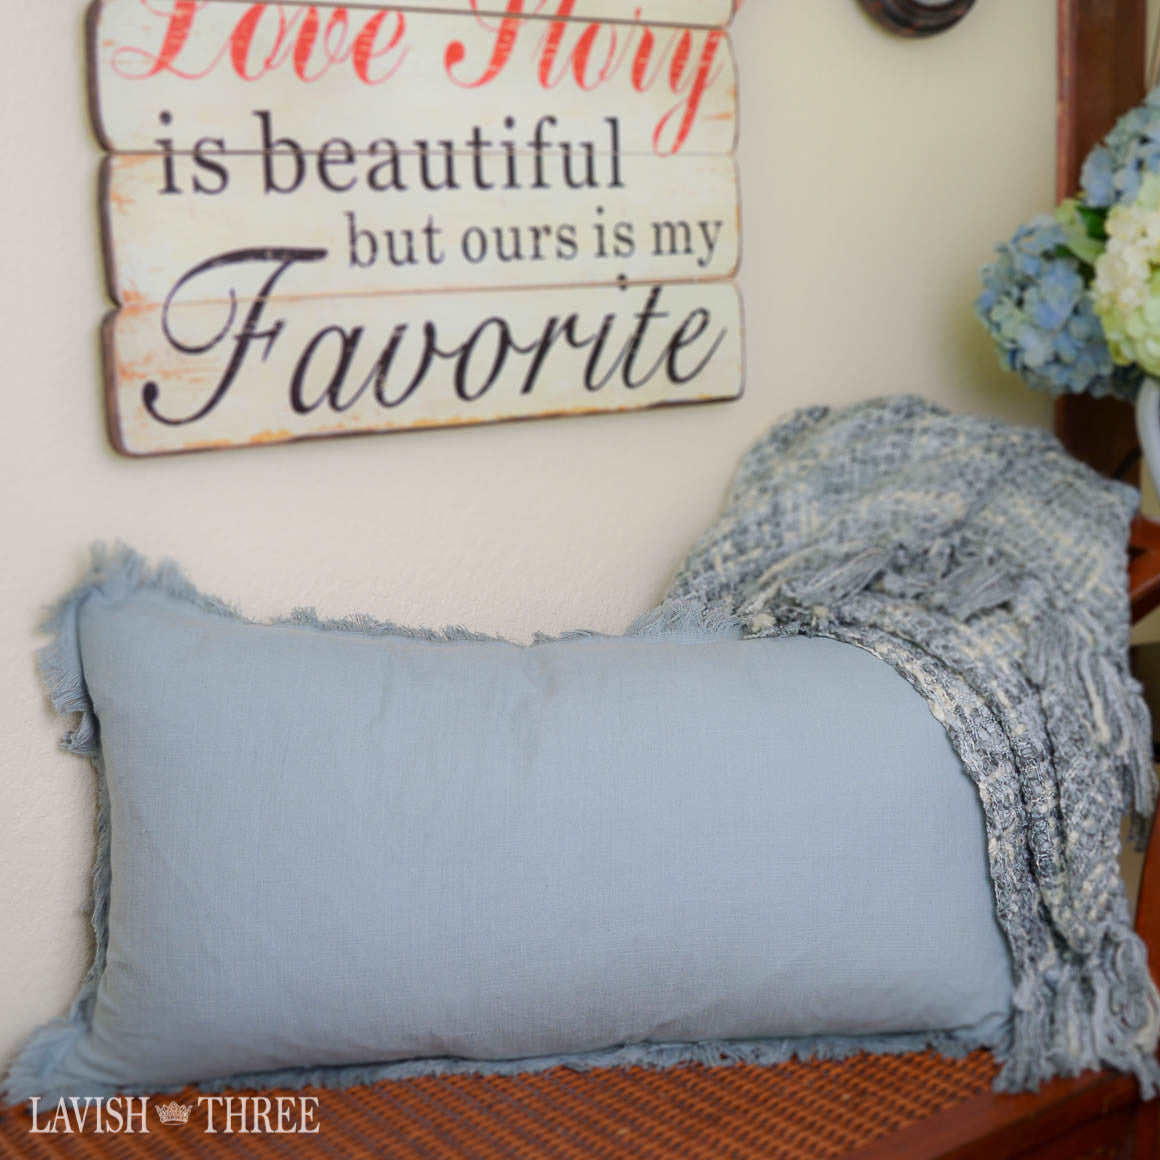 Slate blue linen-like oblong pillow with fringe